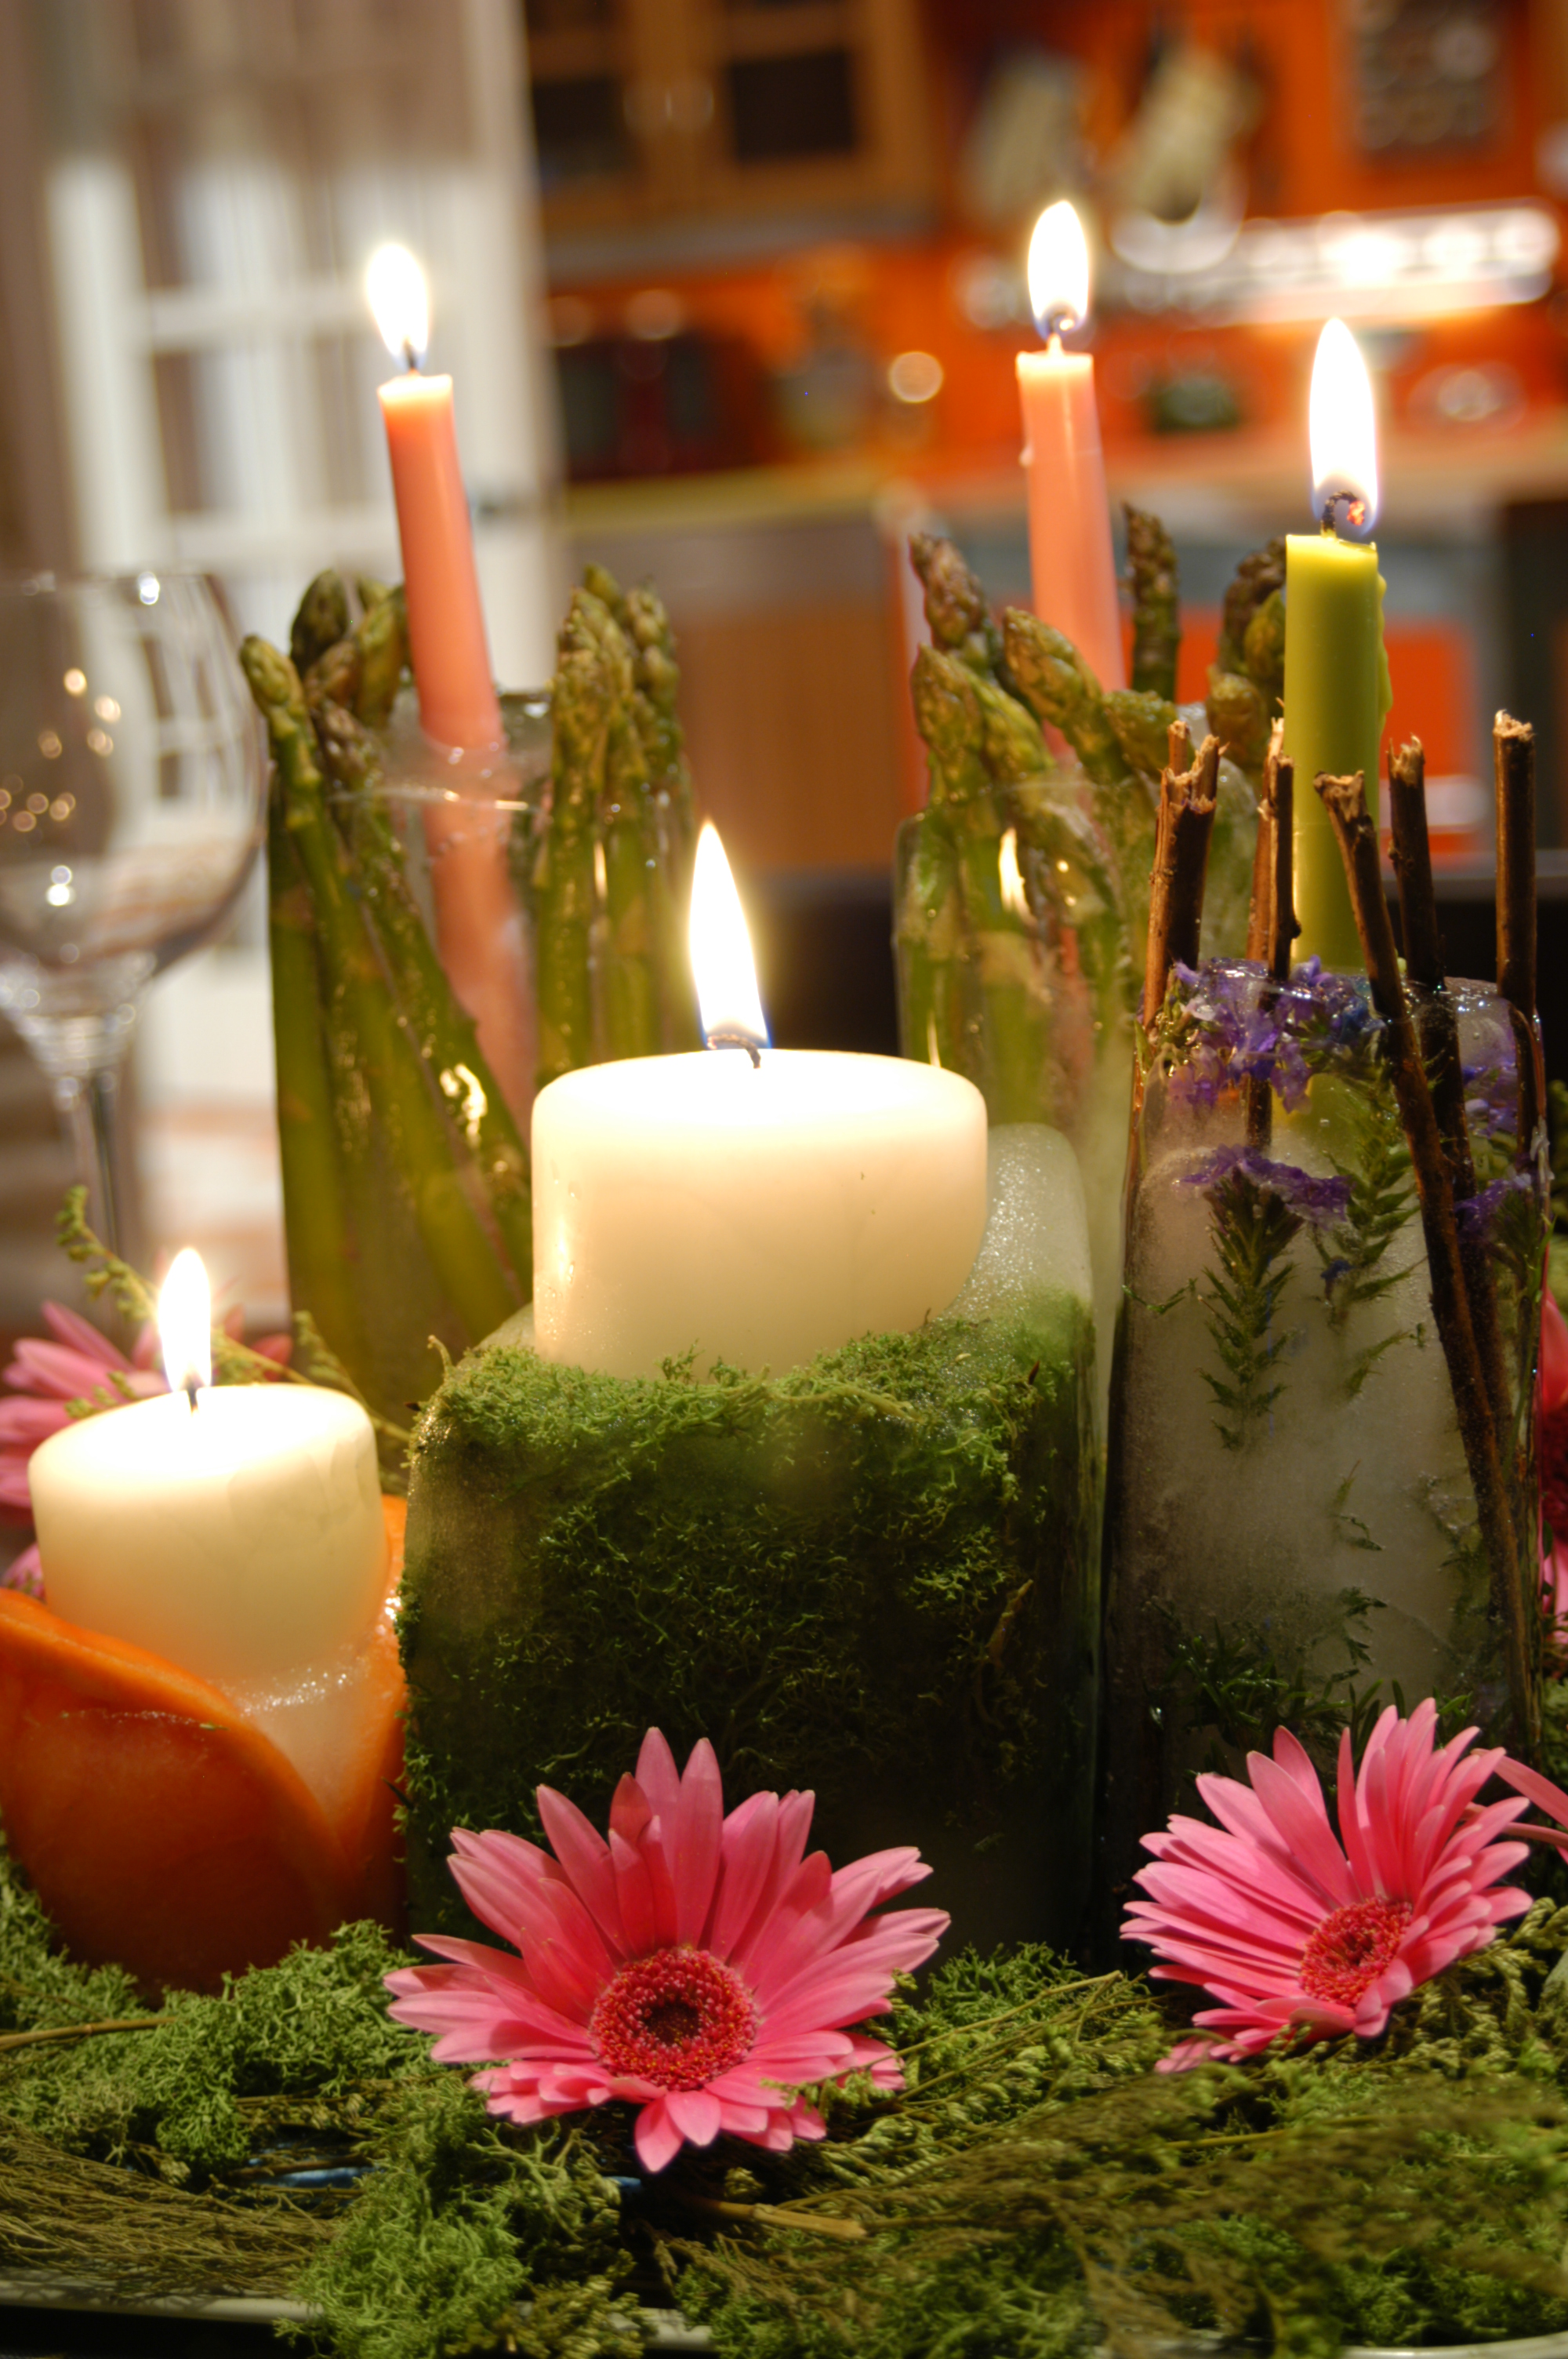 Make a frozen candle and moss centerpiece cathie filian